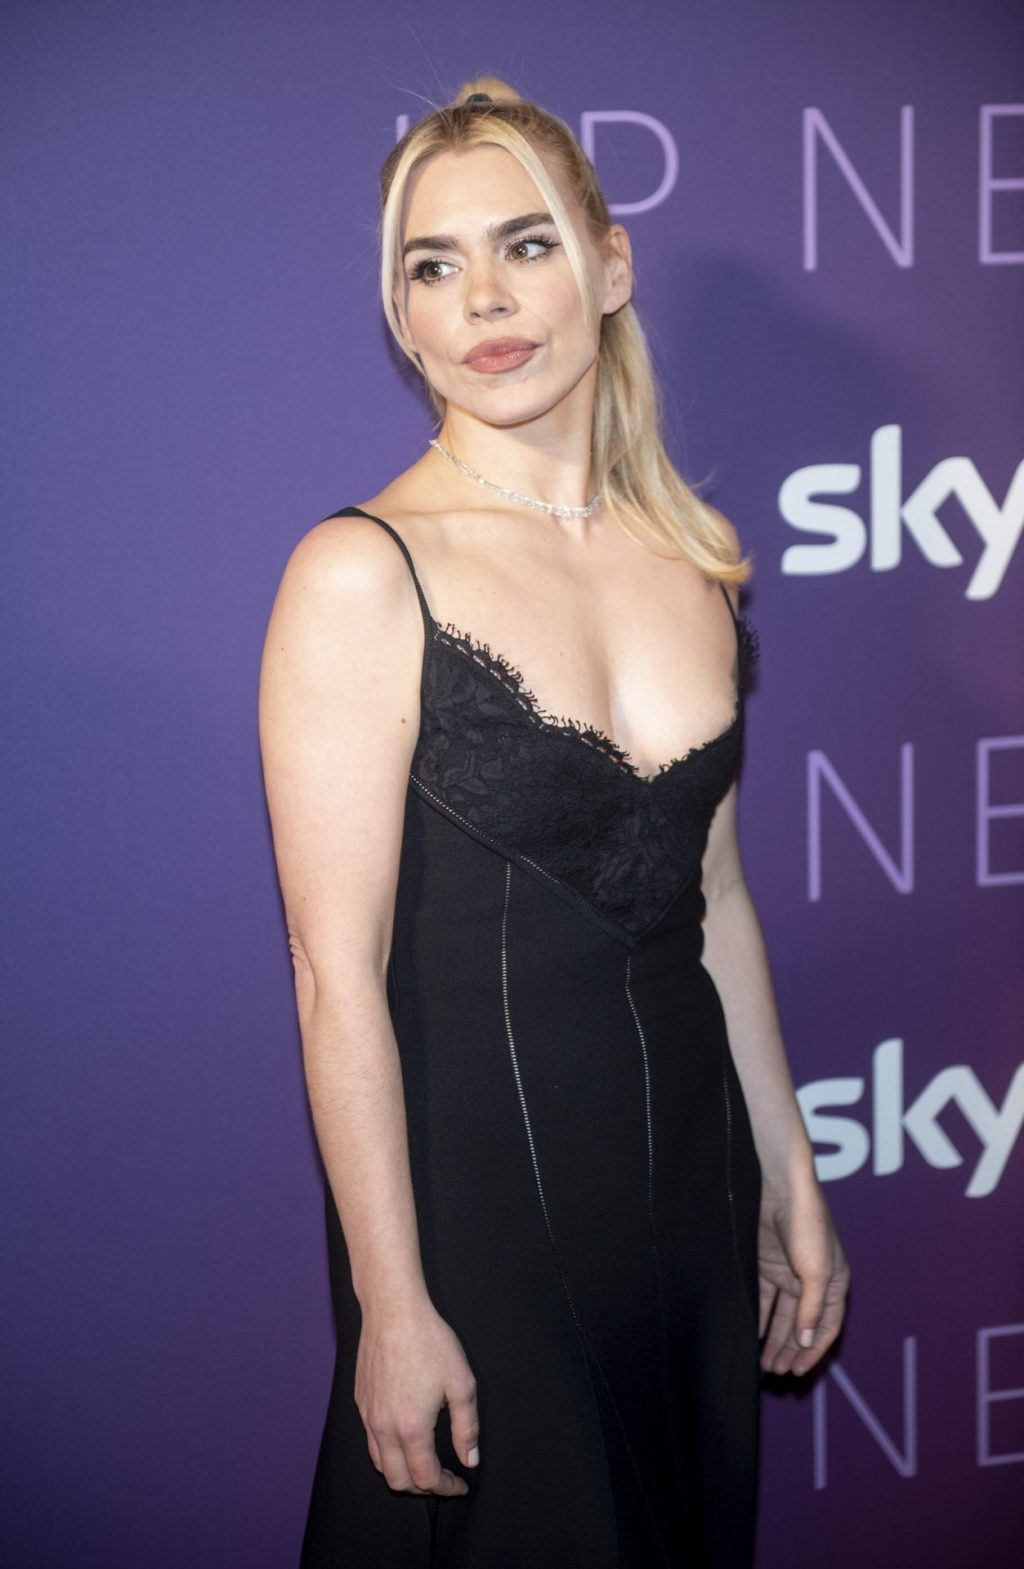 Billie Piper Sexy The Fappening Blog 36 1024x1569 - Billie Piper Smiles at the Sky Up Next Event (67 Photos)